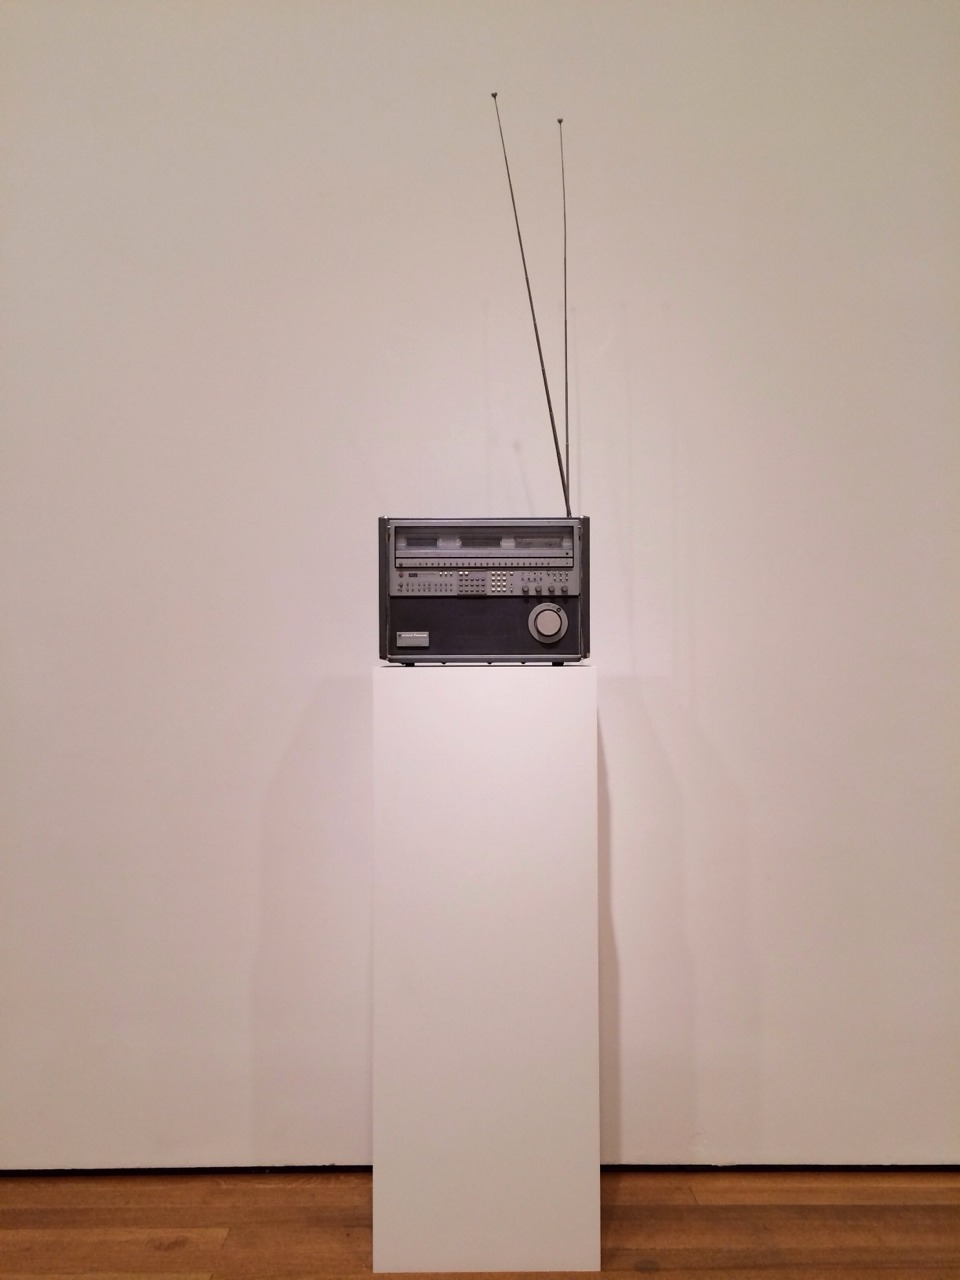 """""""A sculpture must be at least as modern as the most modern hi-fi systems."""" - Isa Genzken I visited her exhibit today at the Museum of Modern Art."""